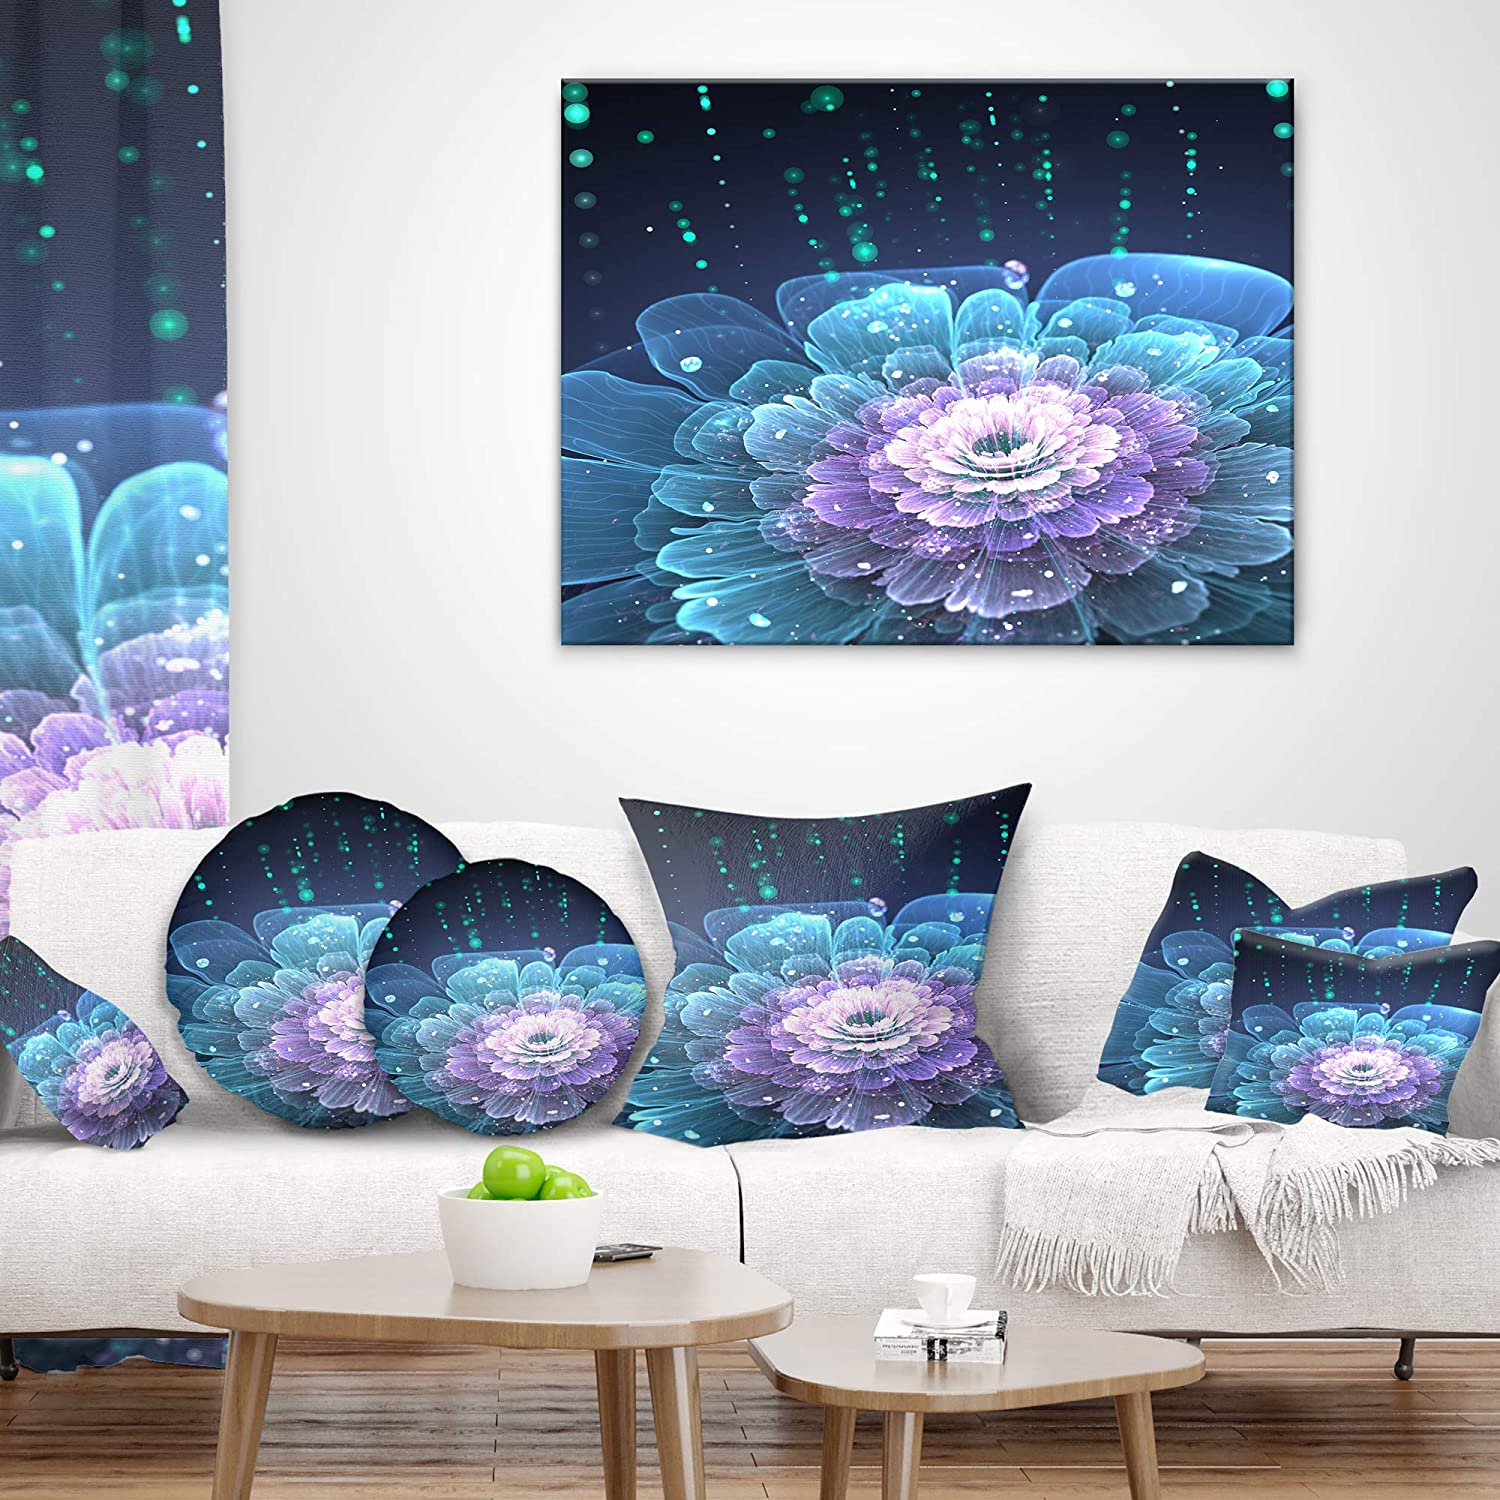 Insert Printed On Both Side Designart CU8849-20-20-C Fractal Flower with Water Drops Floral Round Cushion Cover for Living Room Sofa Throw Pillow 20